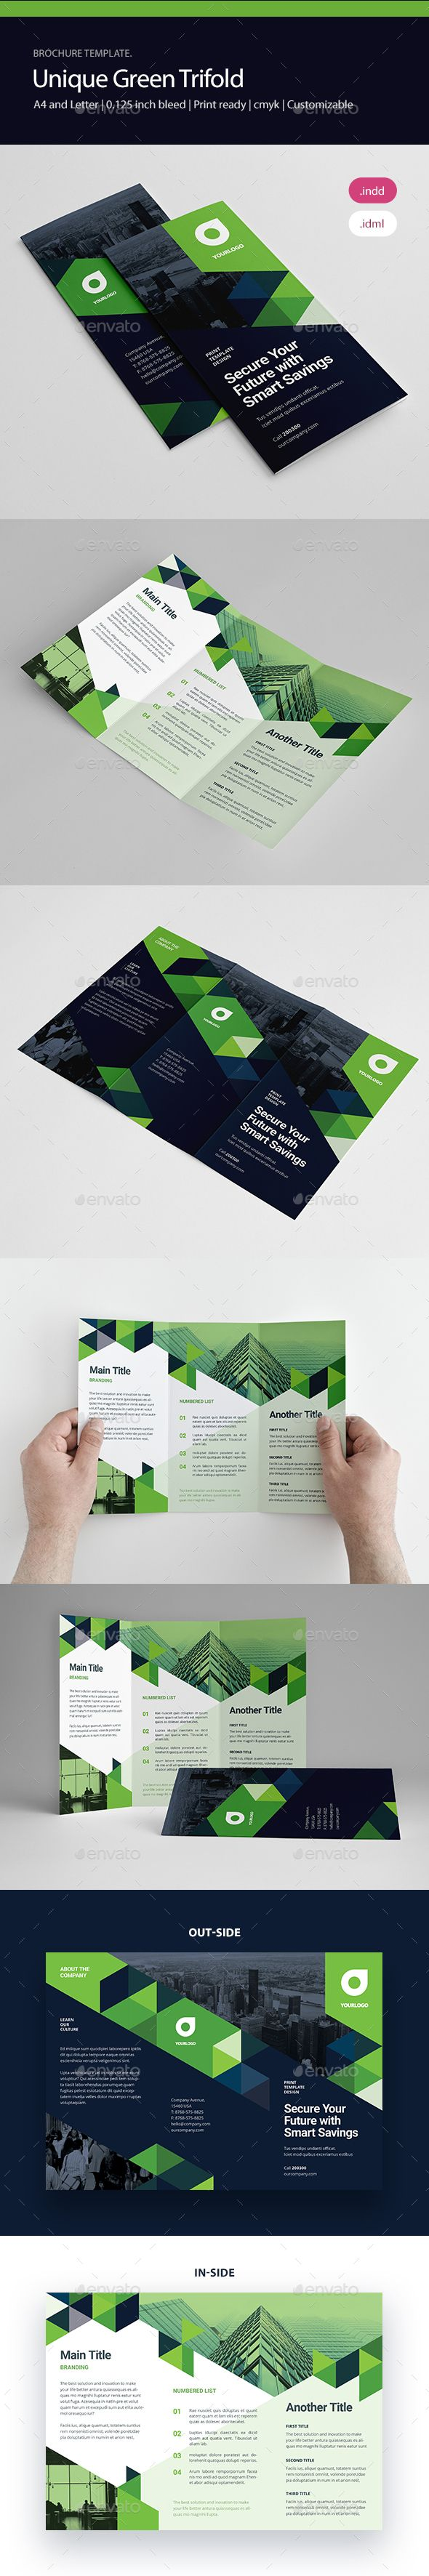 Unique Green Trifold Design Template Brochures Print Design Template InDesign INDD Download here